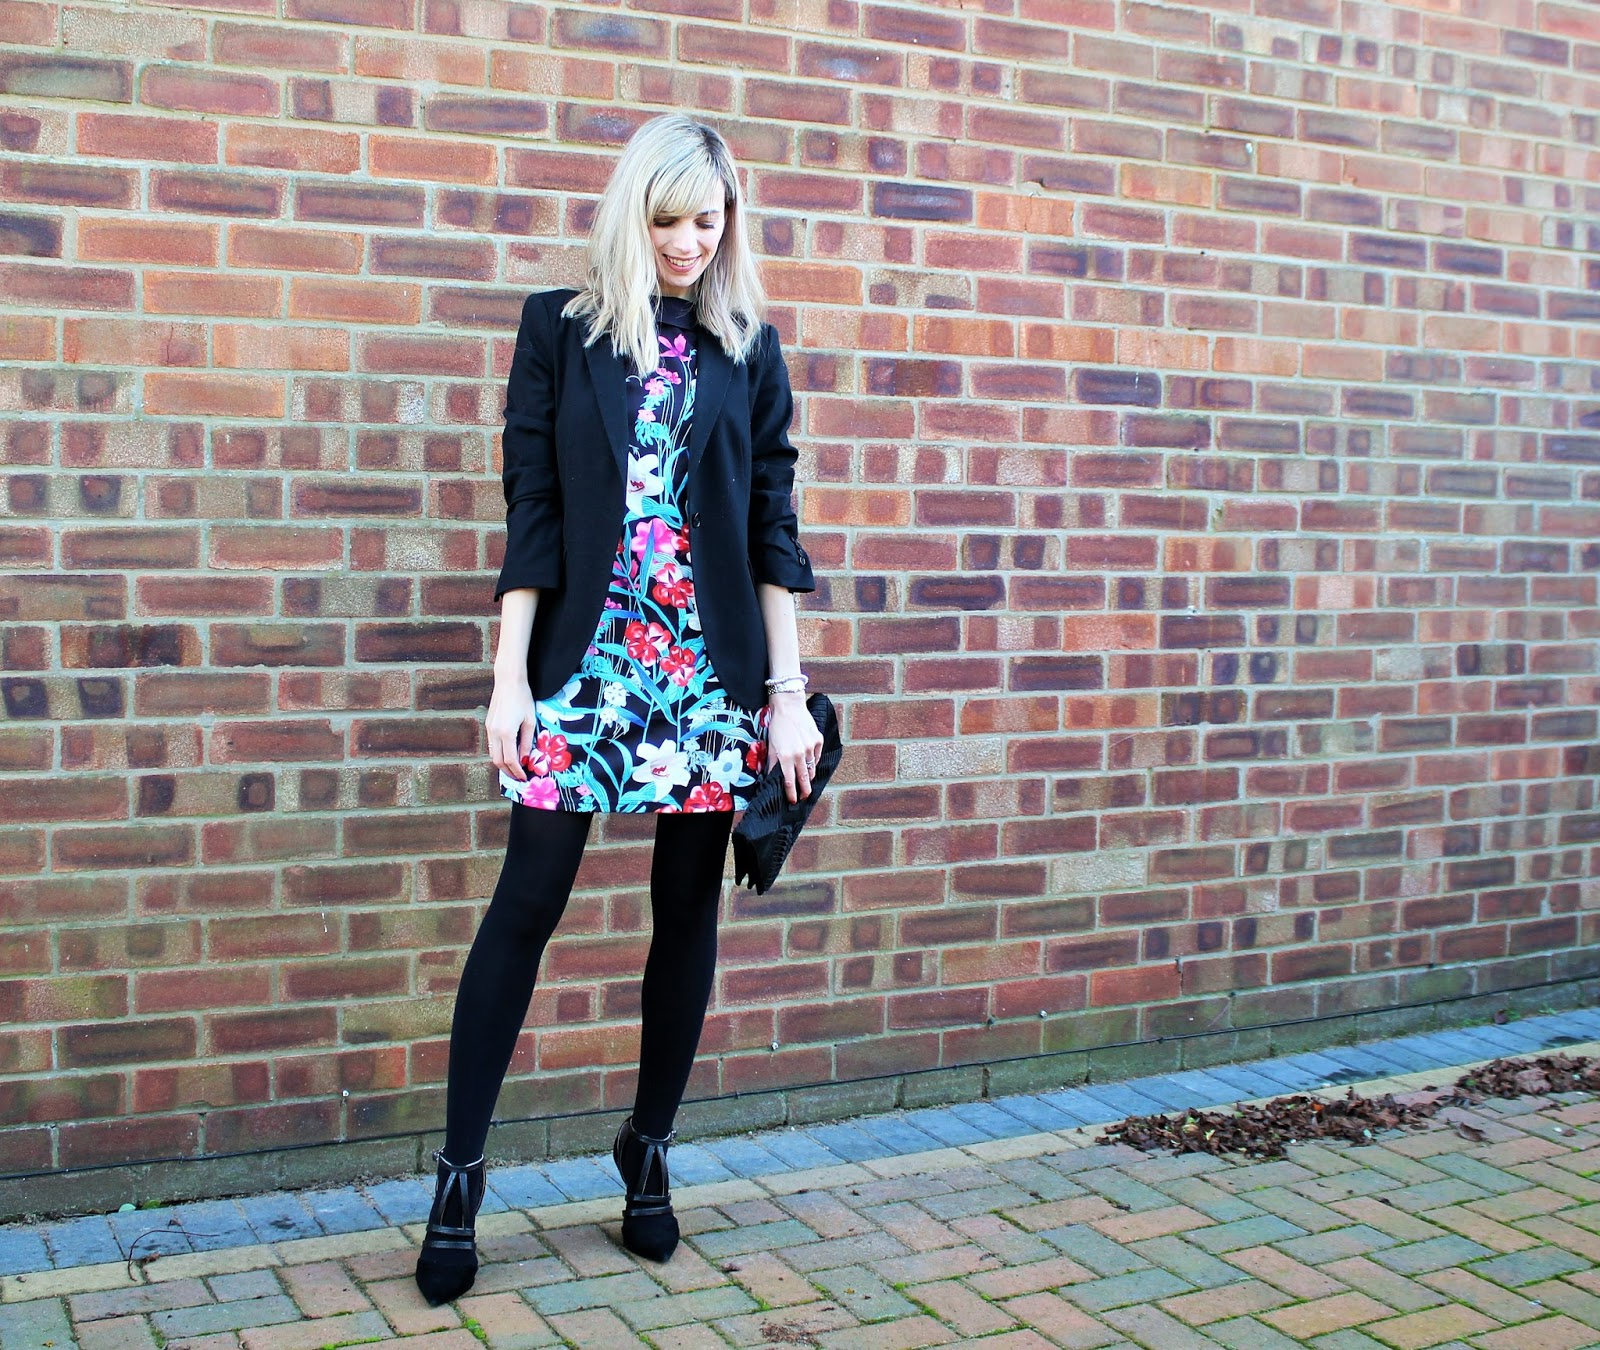 How to set attainable goals for the new year 7  - Shein Dress OOTD